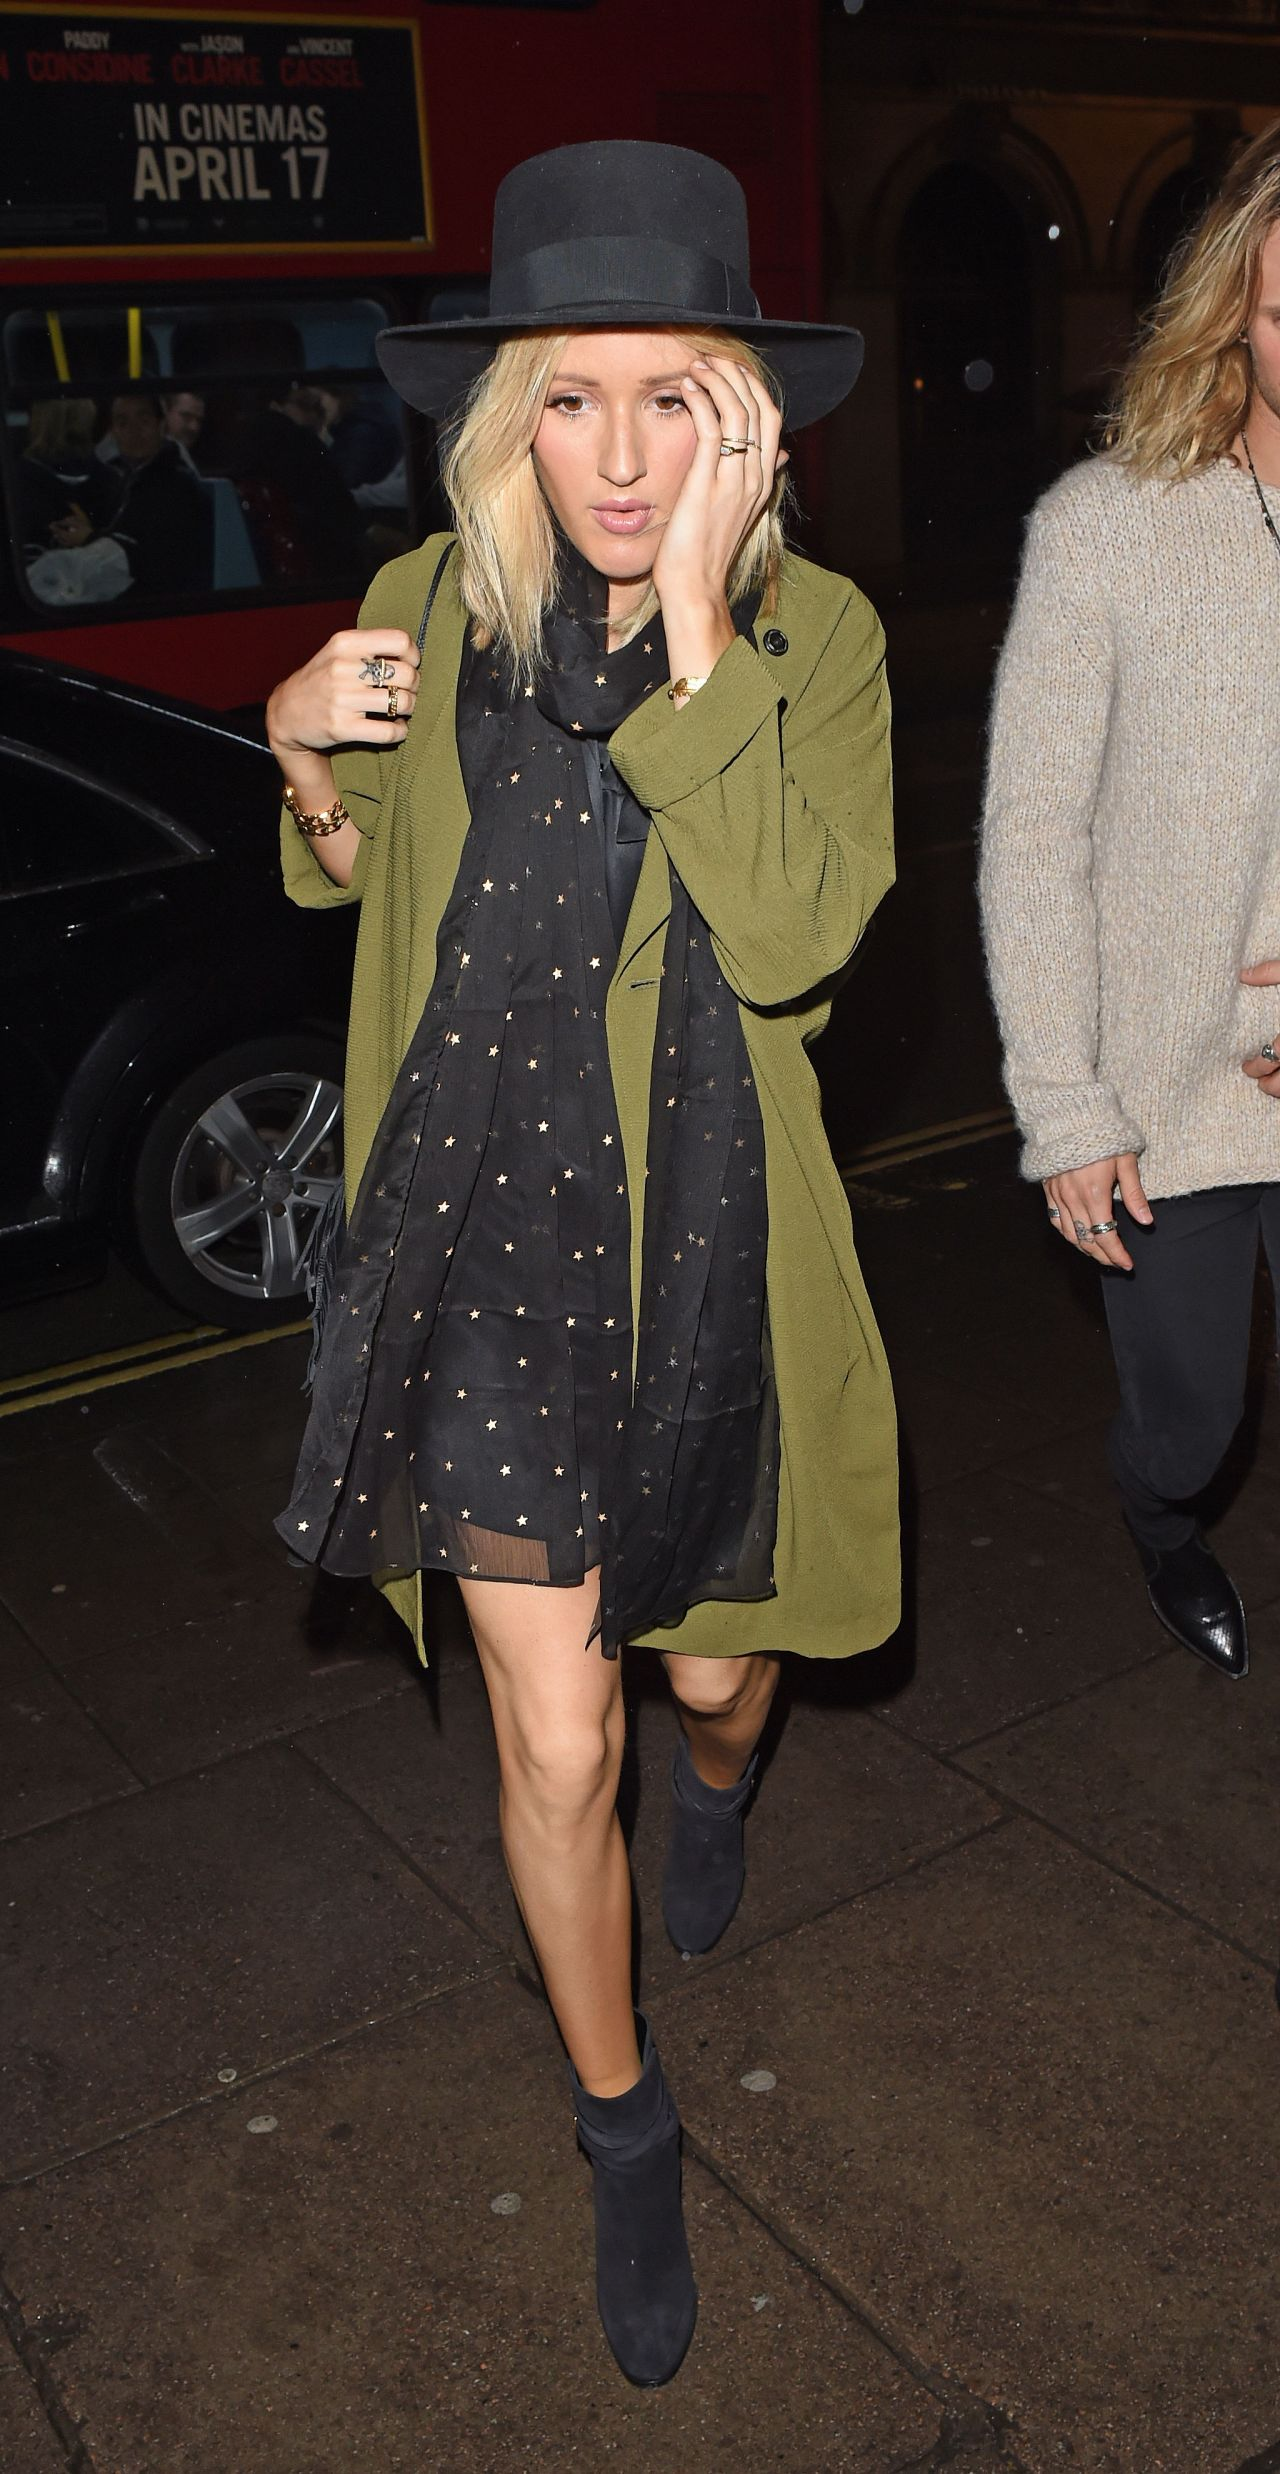 Ellie Goulding Night Out Style London April 2017